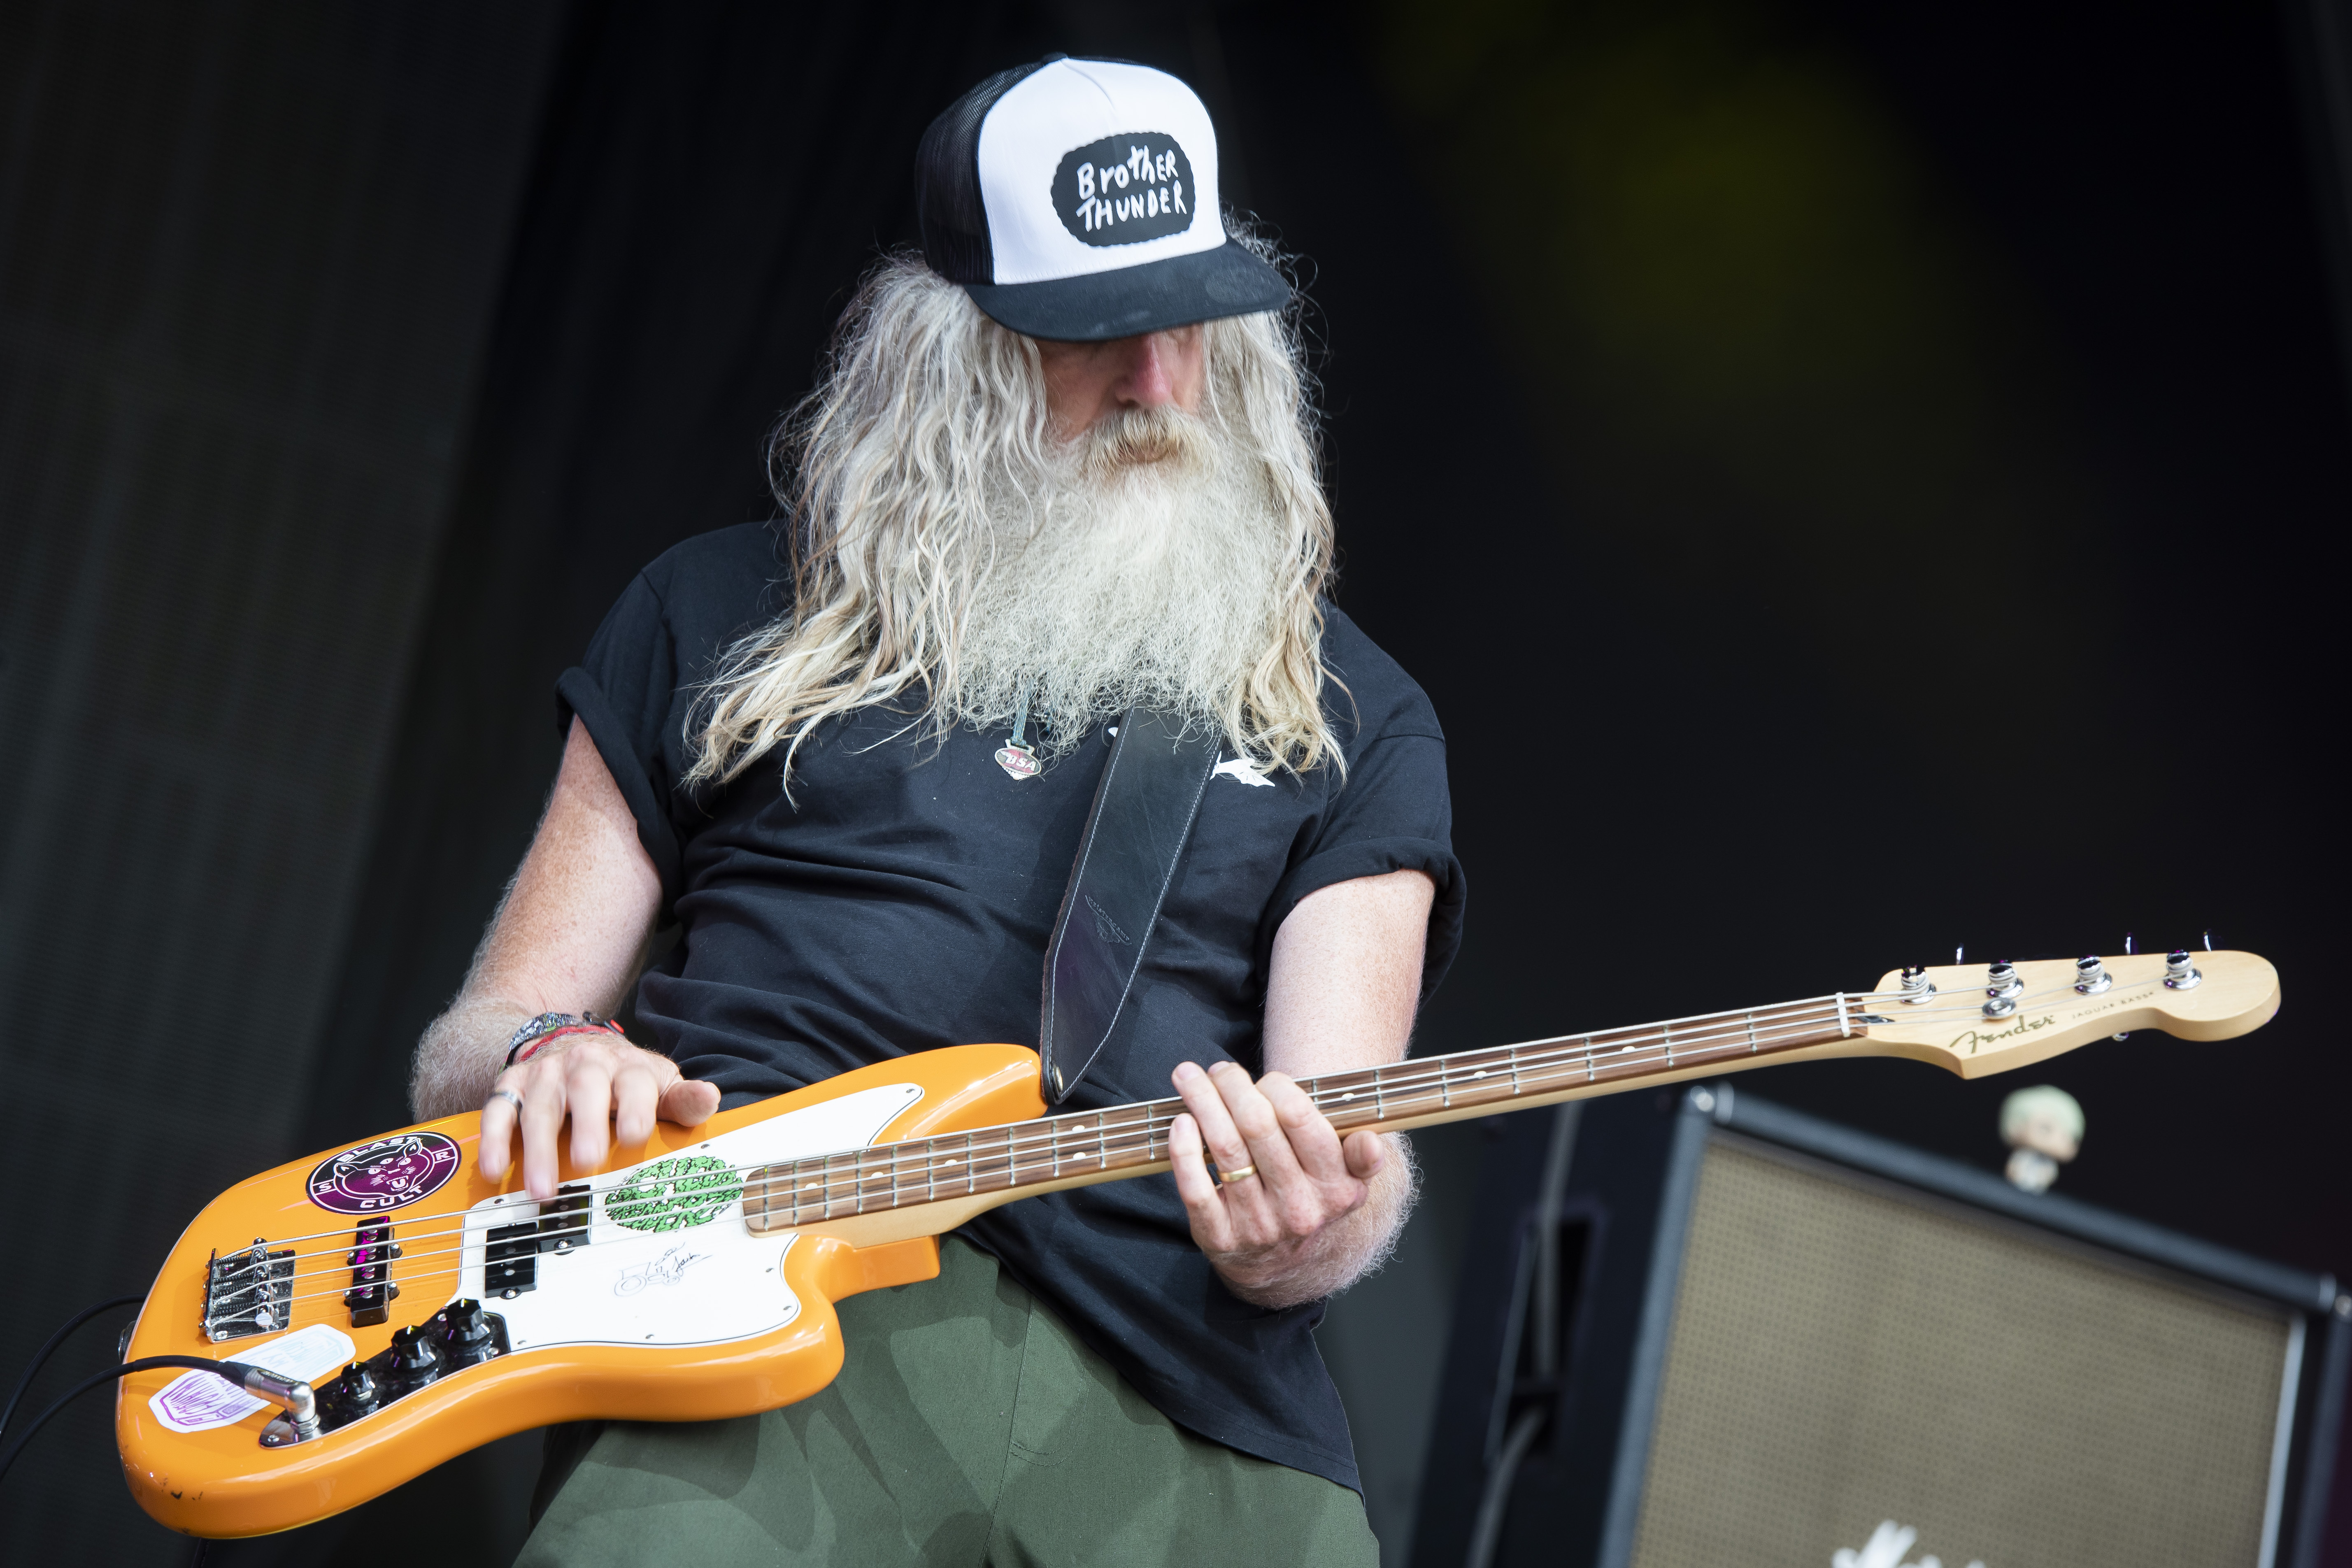 <p>Jack Bessant from Reef performs live on the Castle stage on day 3 of Camp Bestival at Lulworth Castle - Wareham. Picture date: Sunday 1st August 2021. Photo credit should read: David Jensen/EMPICS Entertainment</p>